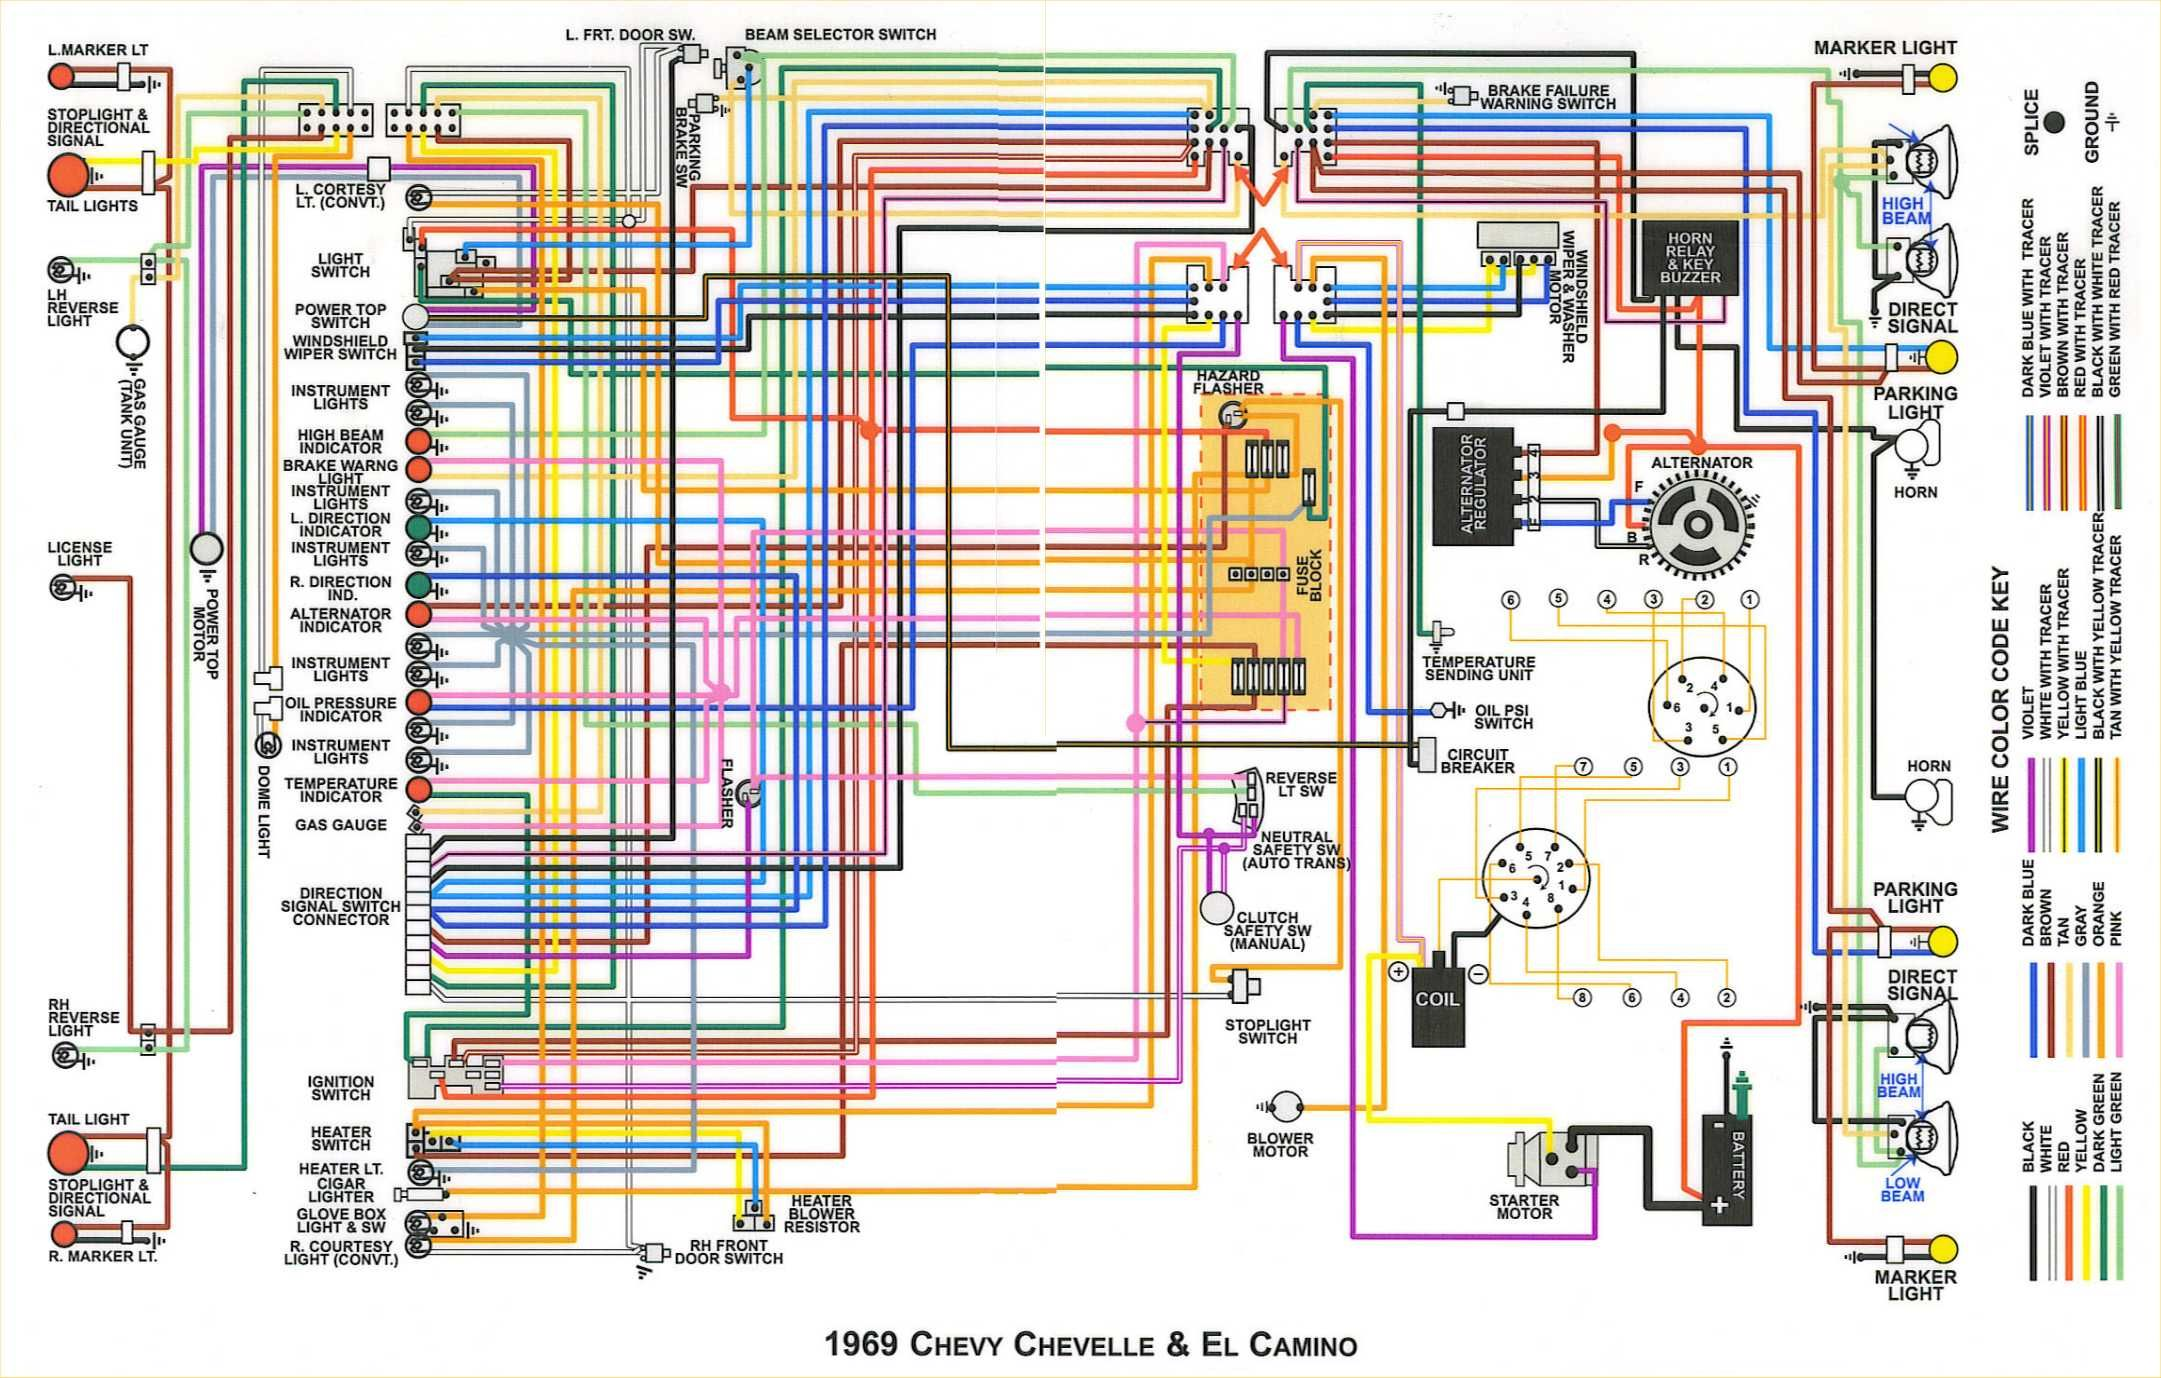 72 Chevelle Dash Wire Diagram Generator External Voltage Regulator Wiring Diagram Foreman Yenpancane Jeanjaures37 Fr